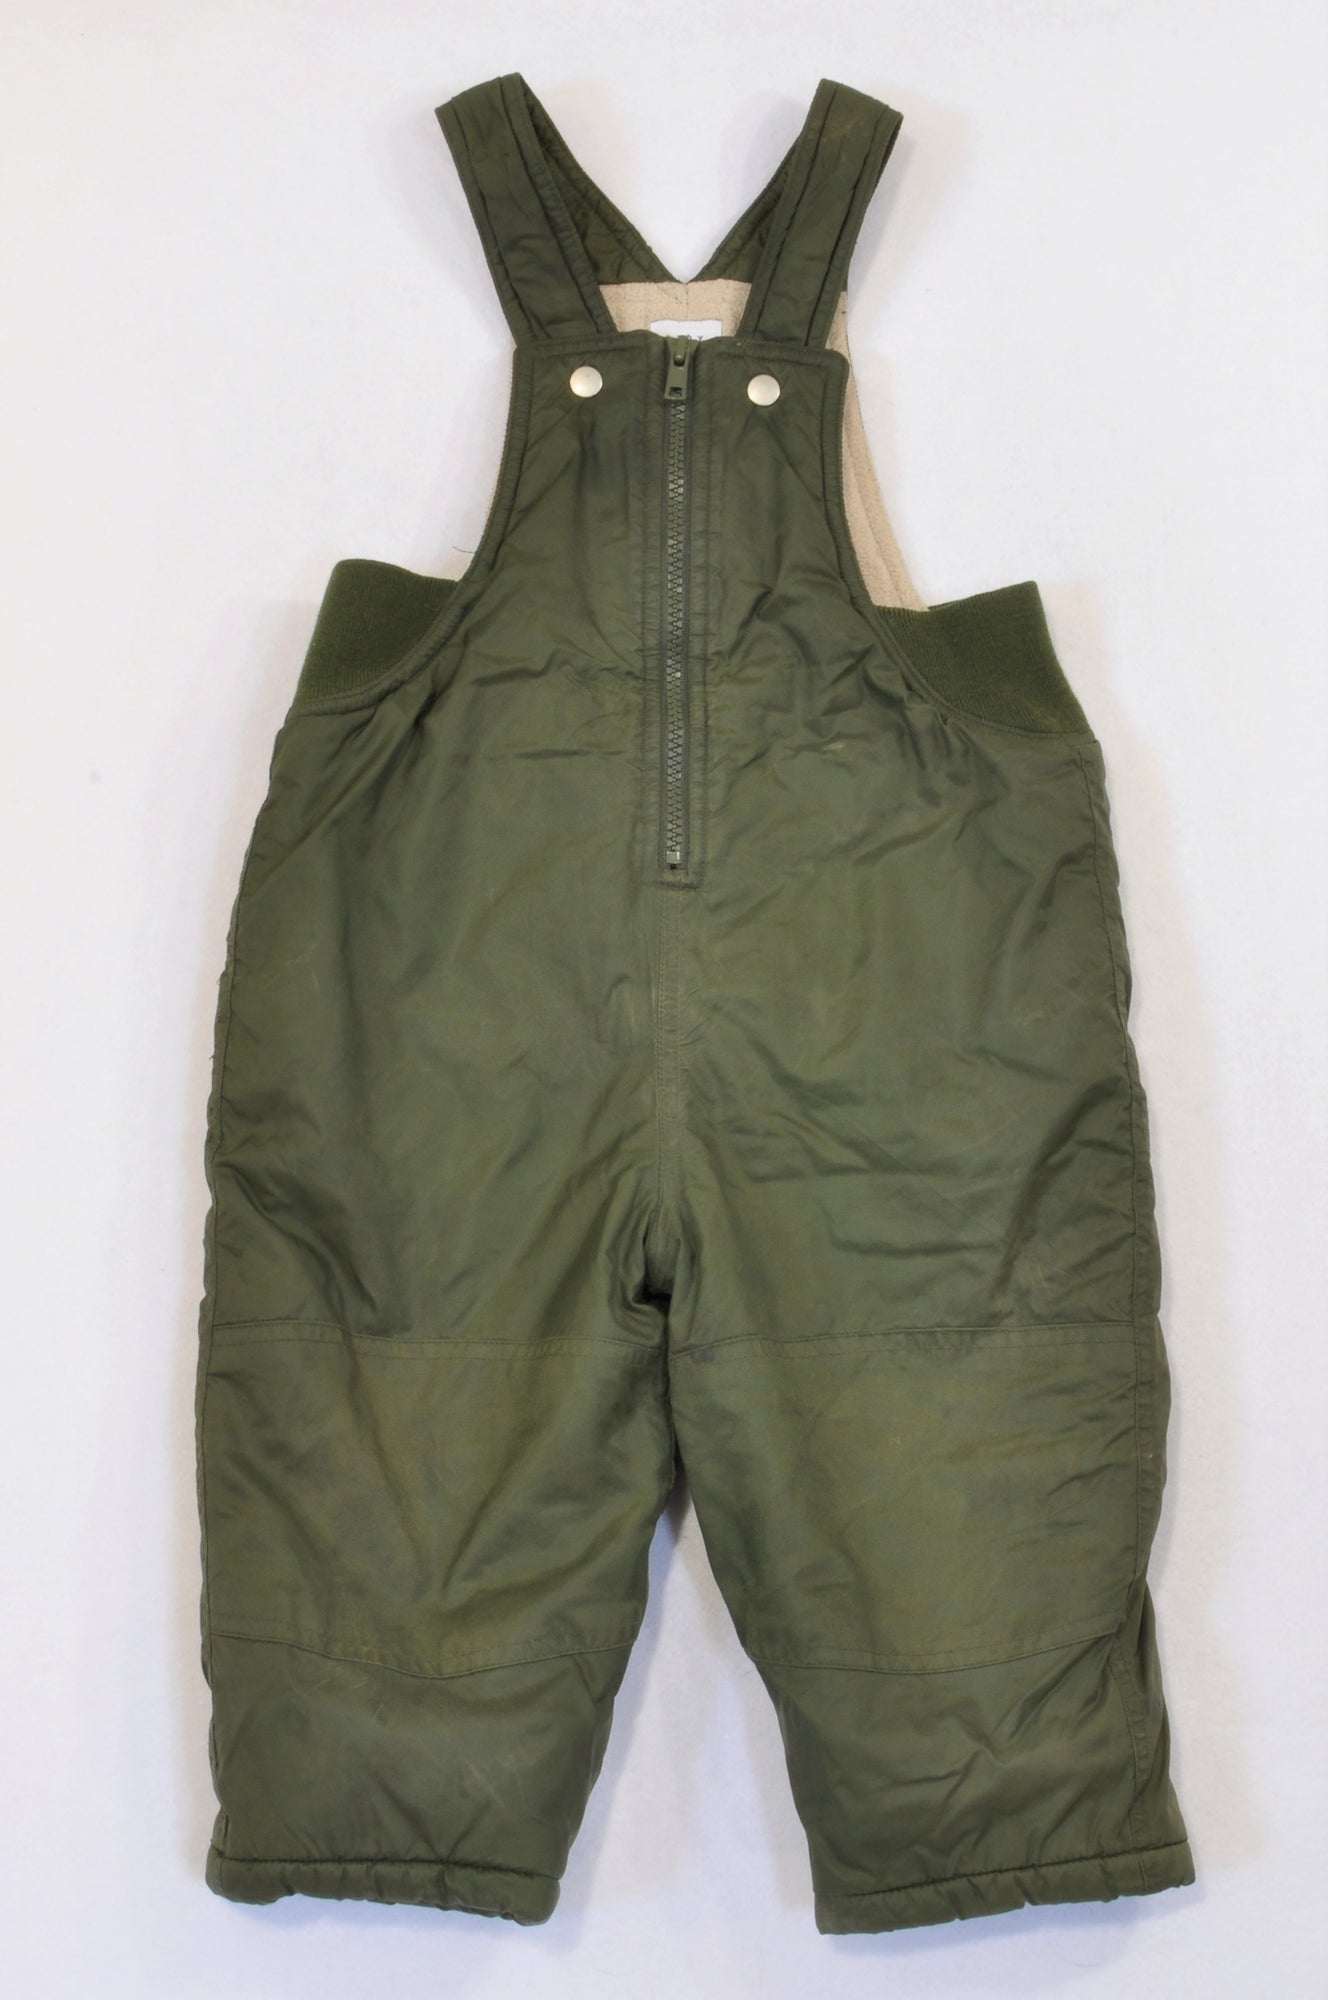 25529bdb3 GAP Olive Fleece Lined Snowsuit Dungarees Unisex 18-24 months – Once ...